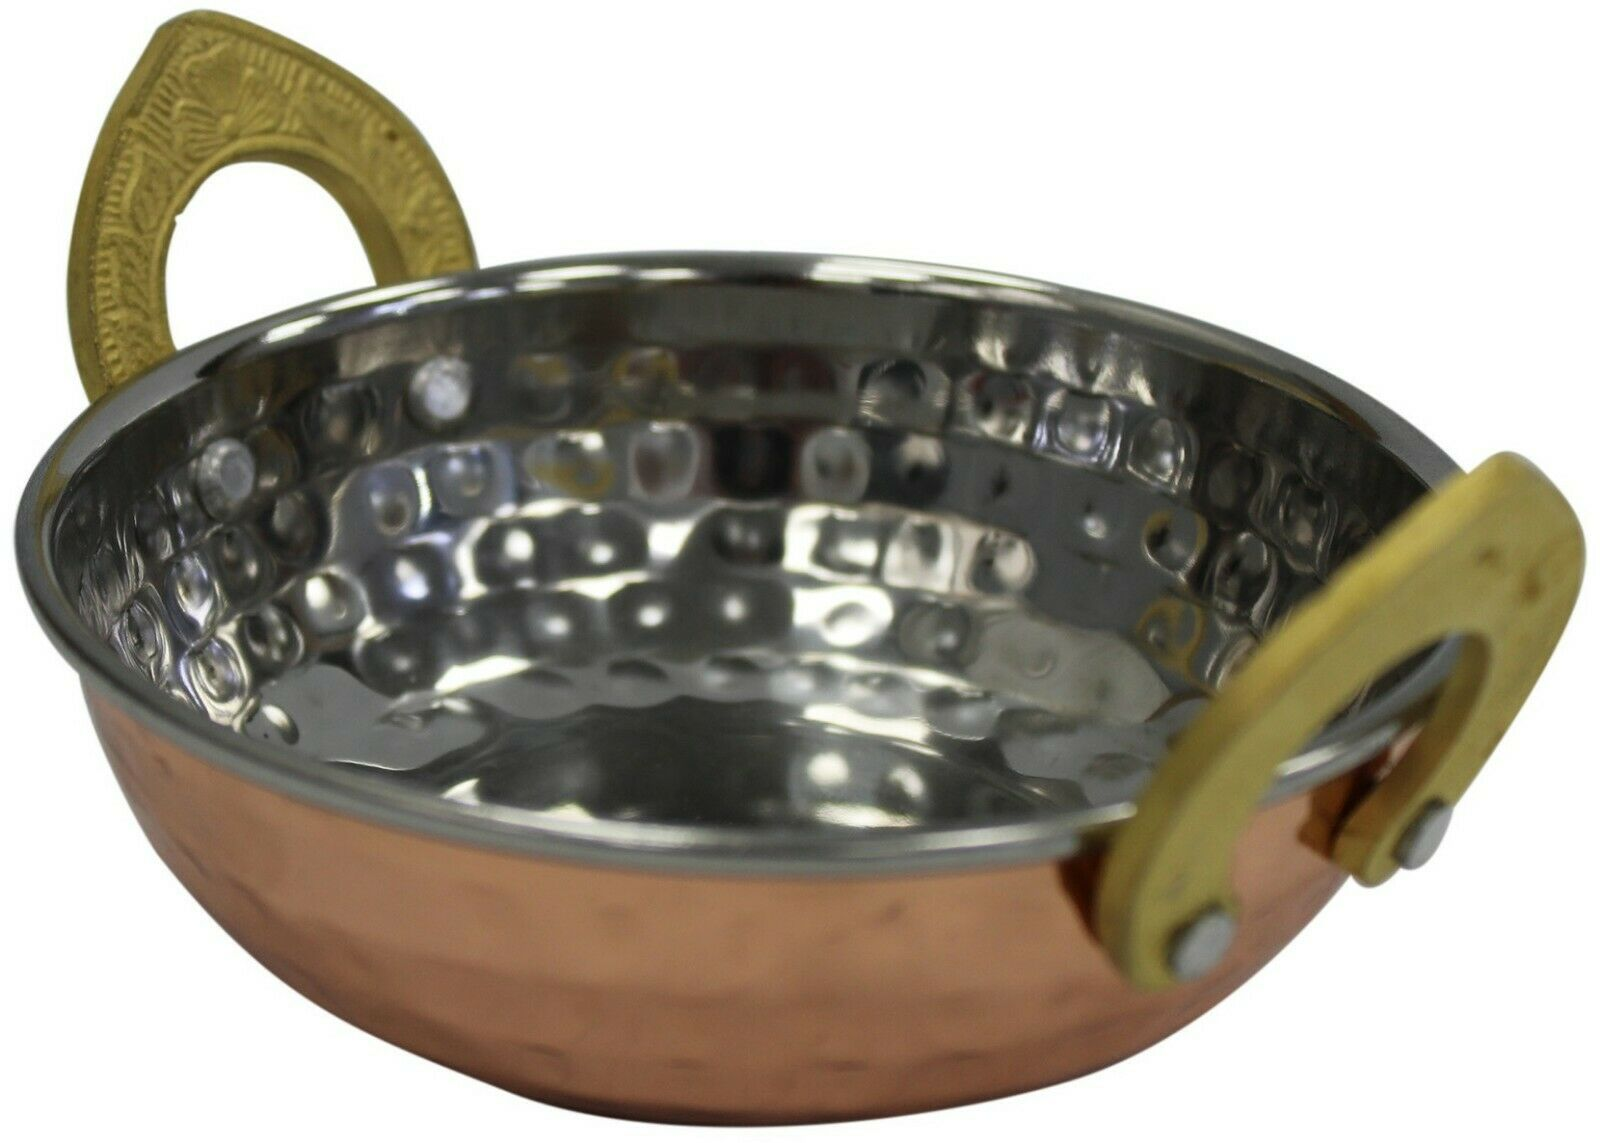 Shiny Copper Kadai Dish Rice Bowl Balti Dish Bowl With Brass Handles Hammered